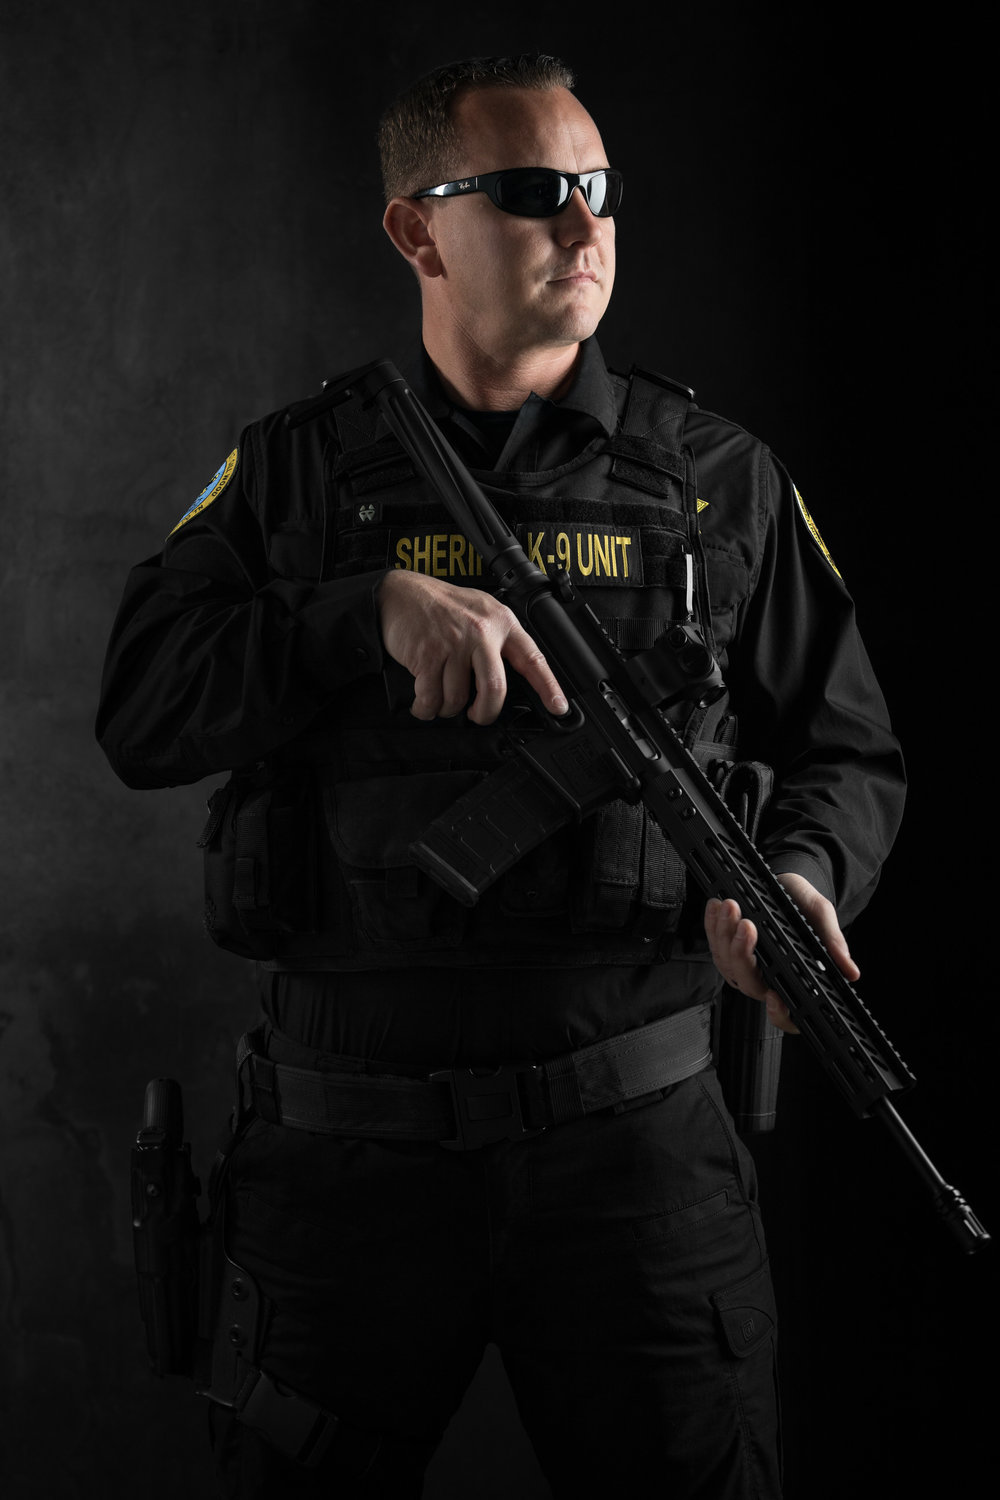 Nashville Advertising Photographer shot this image for the Clarksville PD